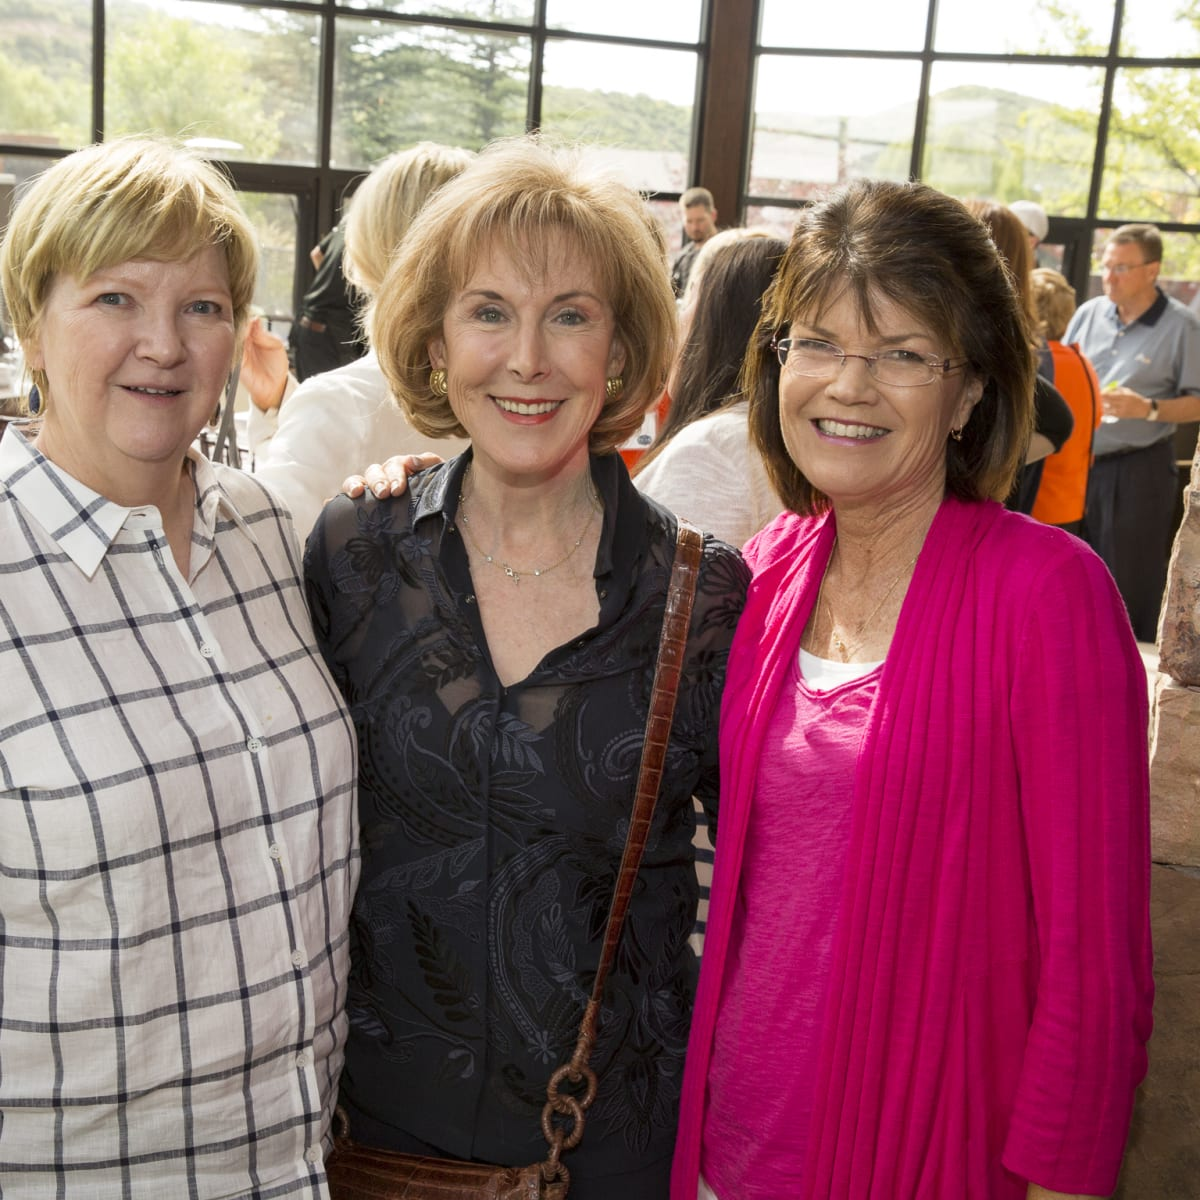 Houston Methodist in Aspen, July 2015, Leslie Blanton, Diane Ofner and Susan Coulter